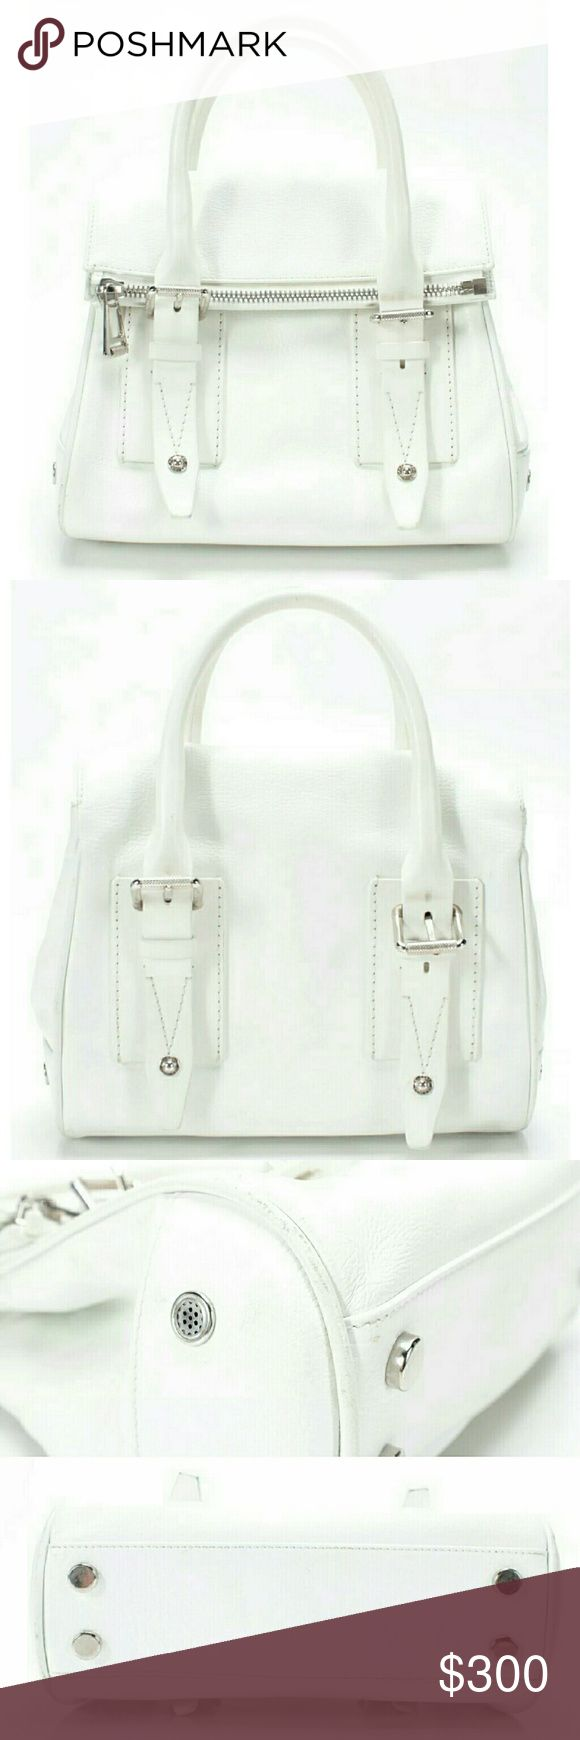 "Belstaff Dorchester 36 White Leather Satchel Bag 100% Guaranteed Authentic with email proof from Belstaff. Optic White Dorchester 36 from the Summer '14 collection. Fold-over zip top detailed with hidden magnets to secure an unzipped top; fold conceals logo applique.  Measures 11"" Long.  Made in Italy. Exterior is in good condition, hardware is prefect. Some discoloration at handles and scuffs to piping. Interior shows wear including discoloration under interior zipper and heavy marks at…"